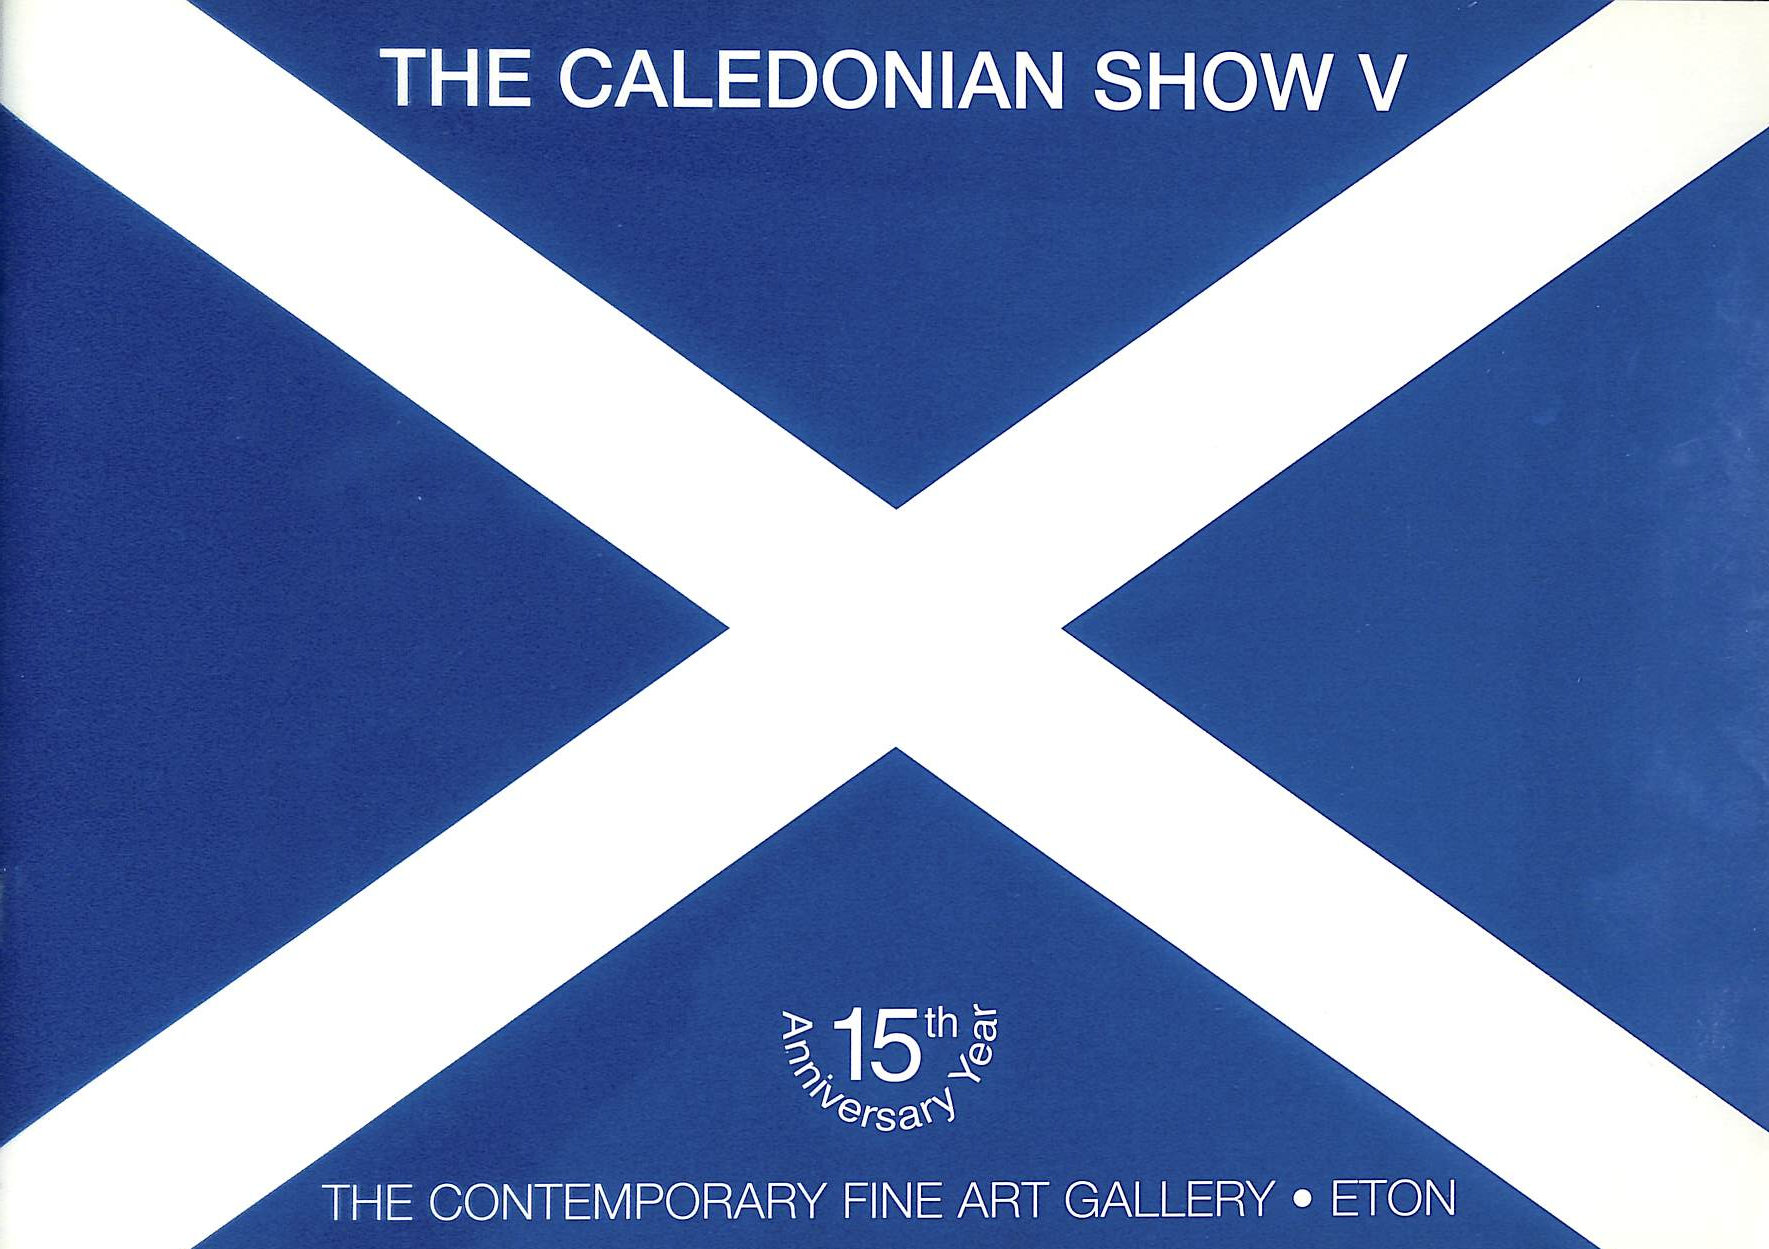 Image for The Caledonian Show V, 15th Anniversary Year. The Contemporary Fine Art Gallery, Eton